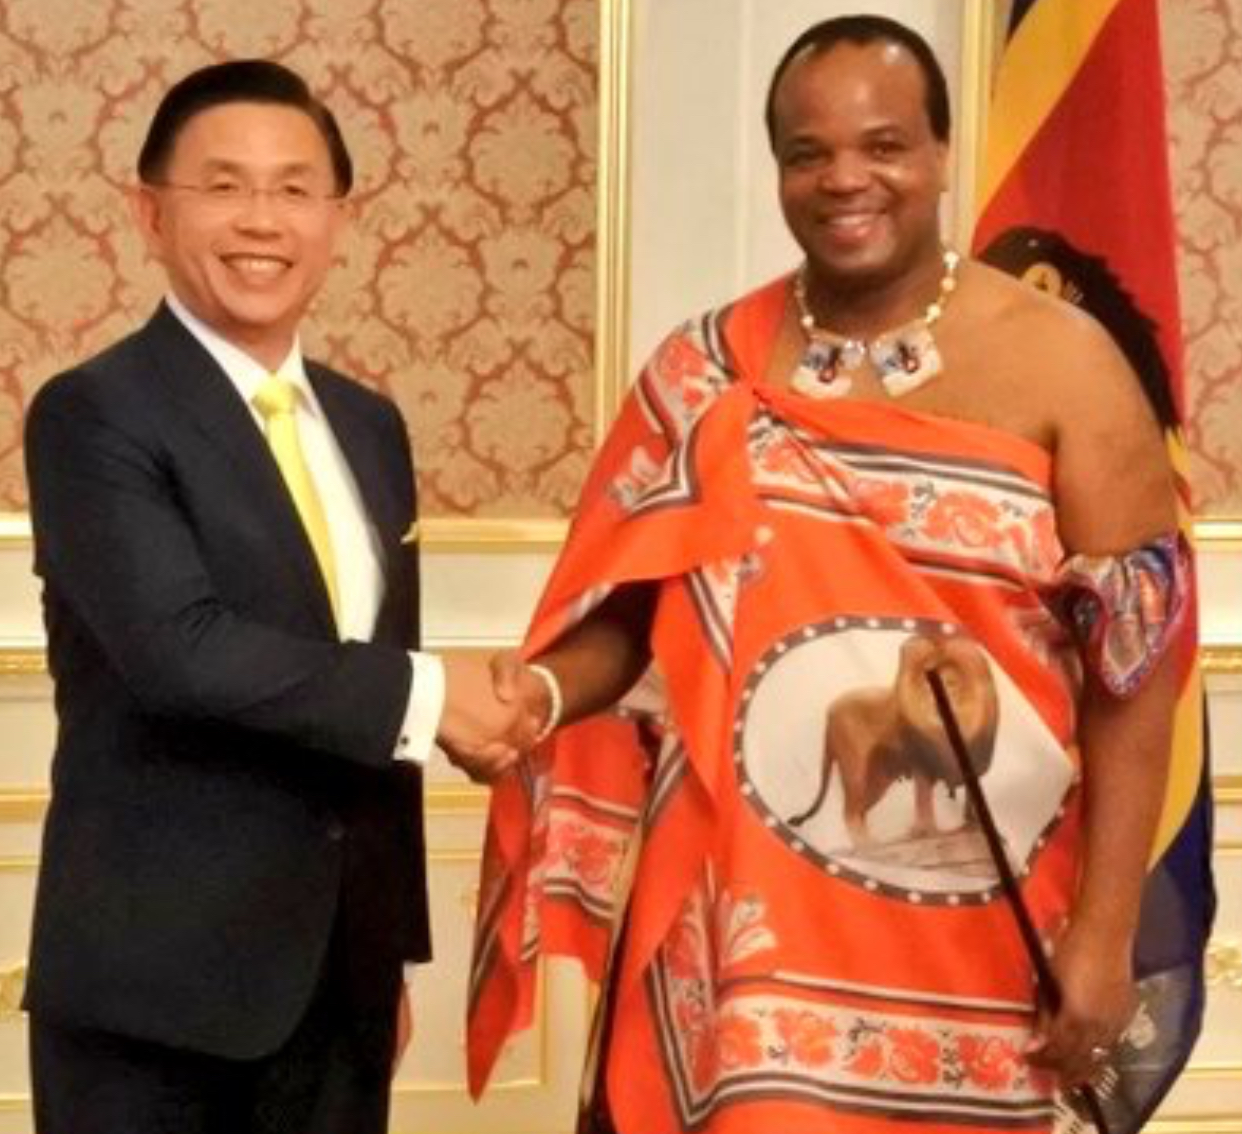 Taiwan Ambassador says election results will not affect diplomatic ties with eSwatini